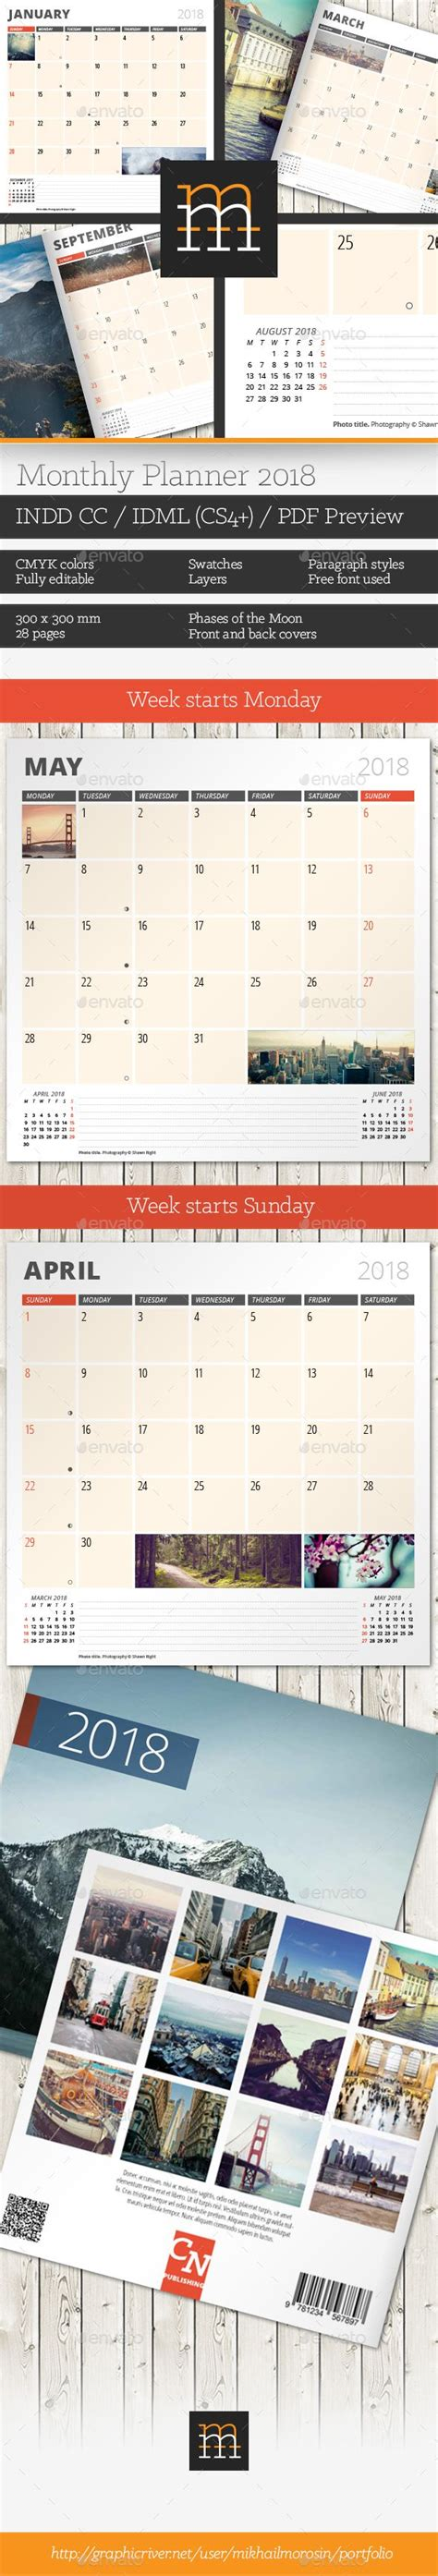 daily planner template indesign free 25 best ideas about monthly planner template on pinterest